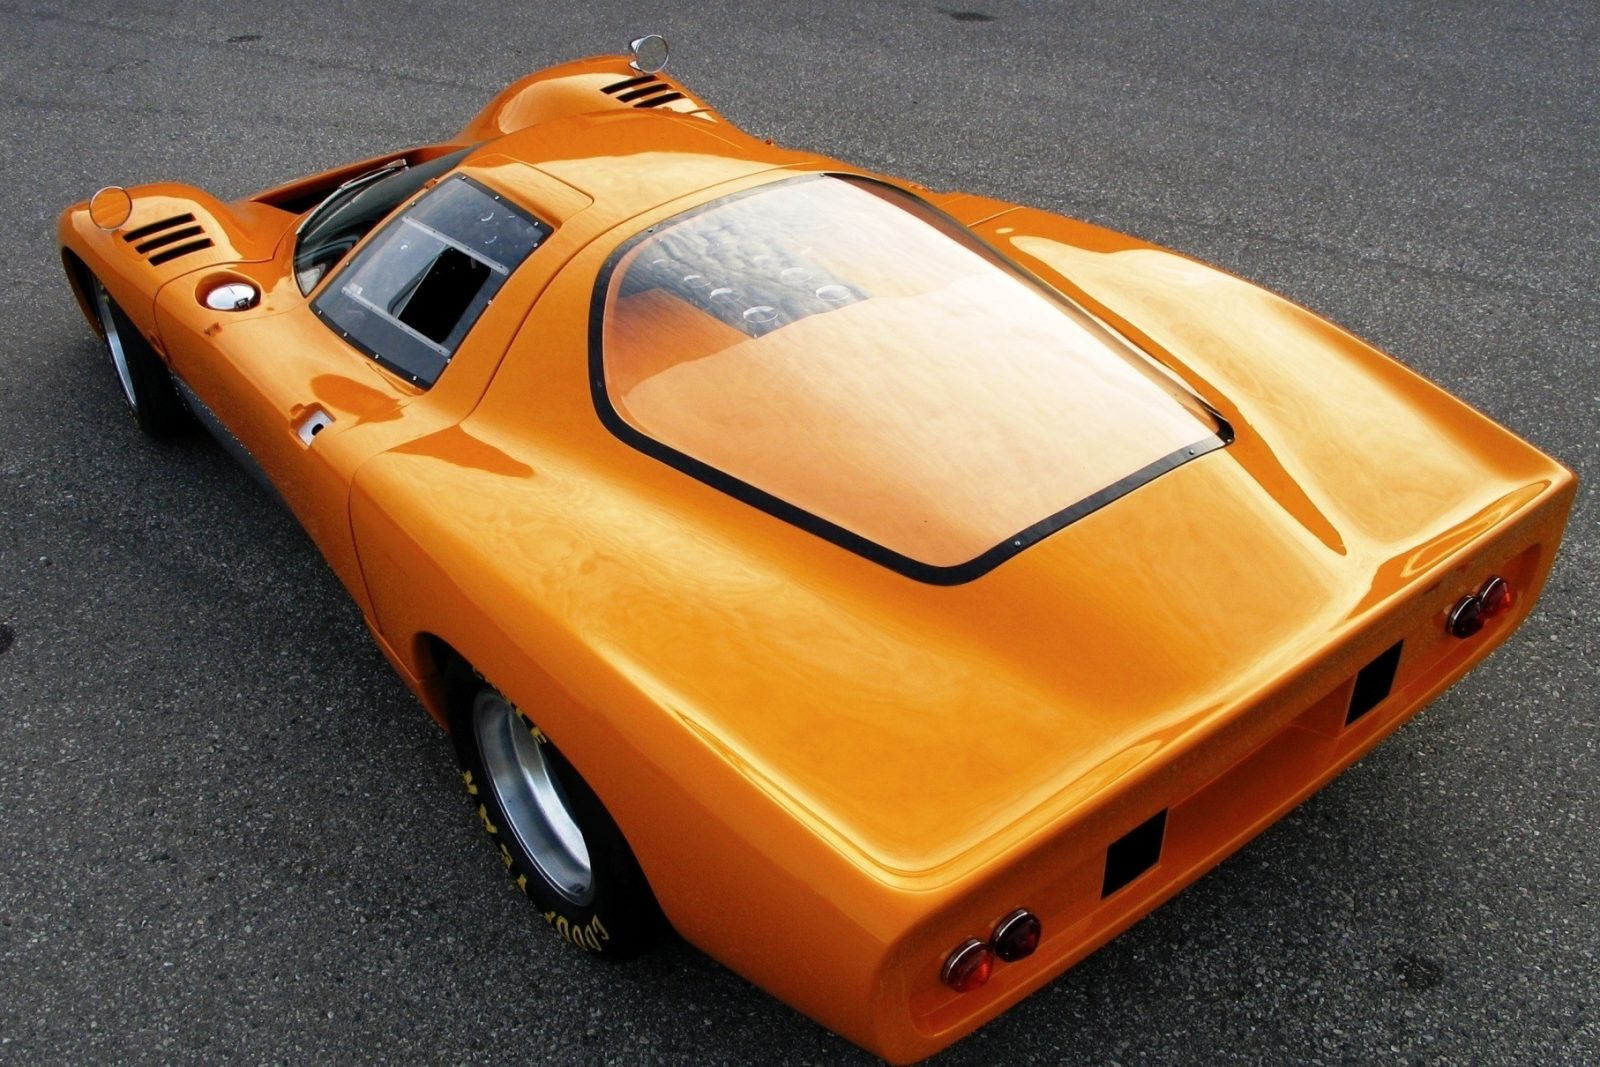 1969 McLaren M6GT - Specs vs F1 and P1 - Photo 54